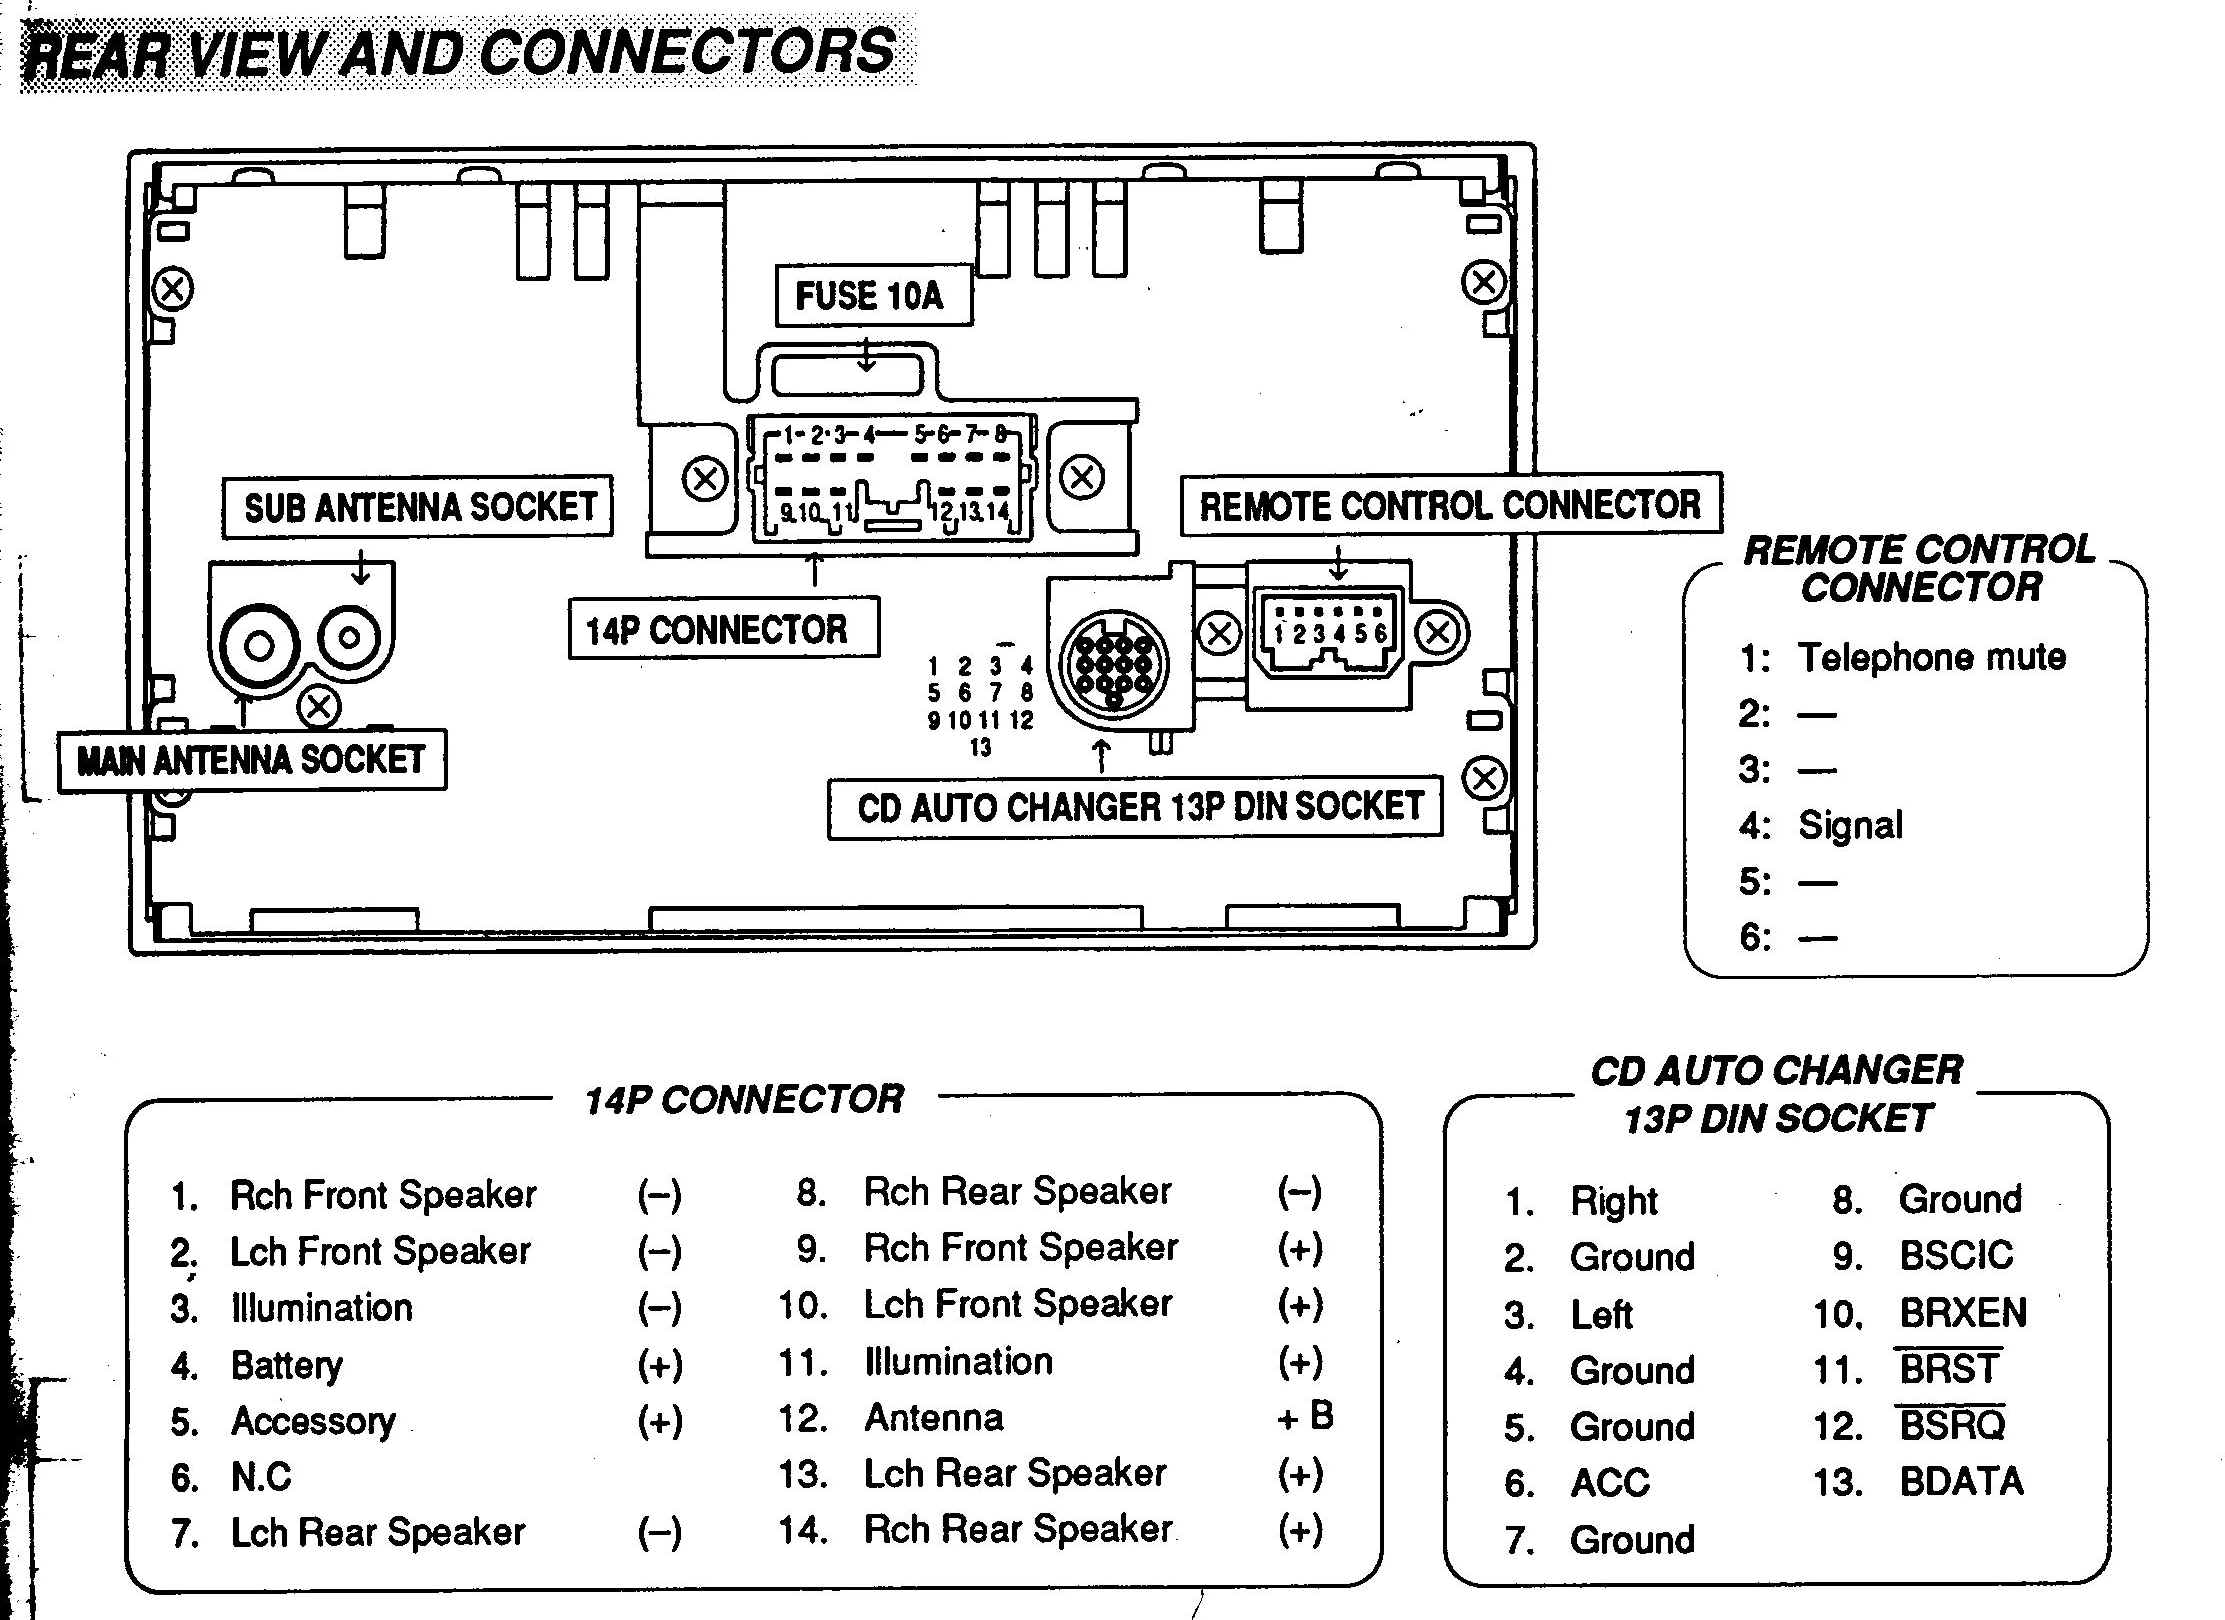 WireHarnessMit121003 car radio wire diagram car wiring diagrams instruction eg civic radio wiring diagram at crackthecode.co